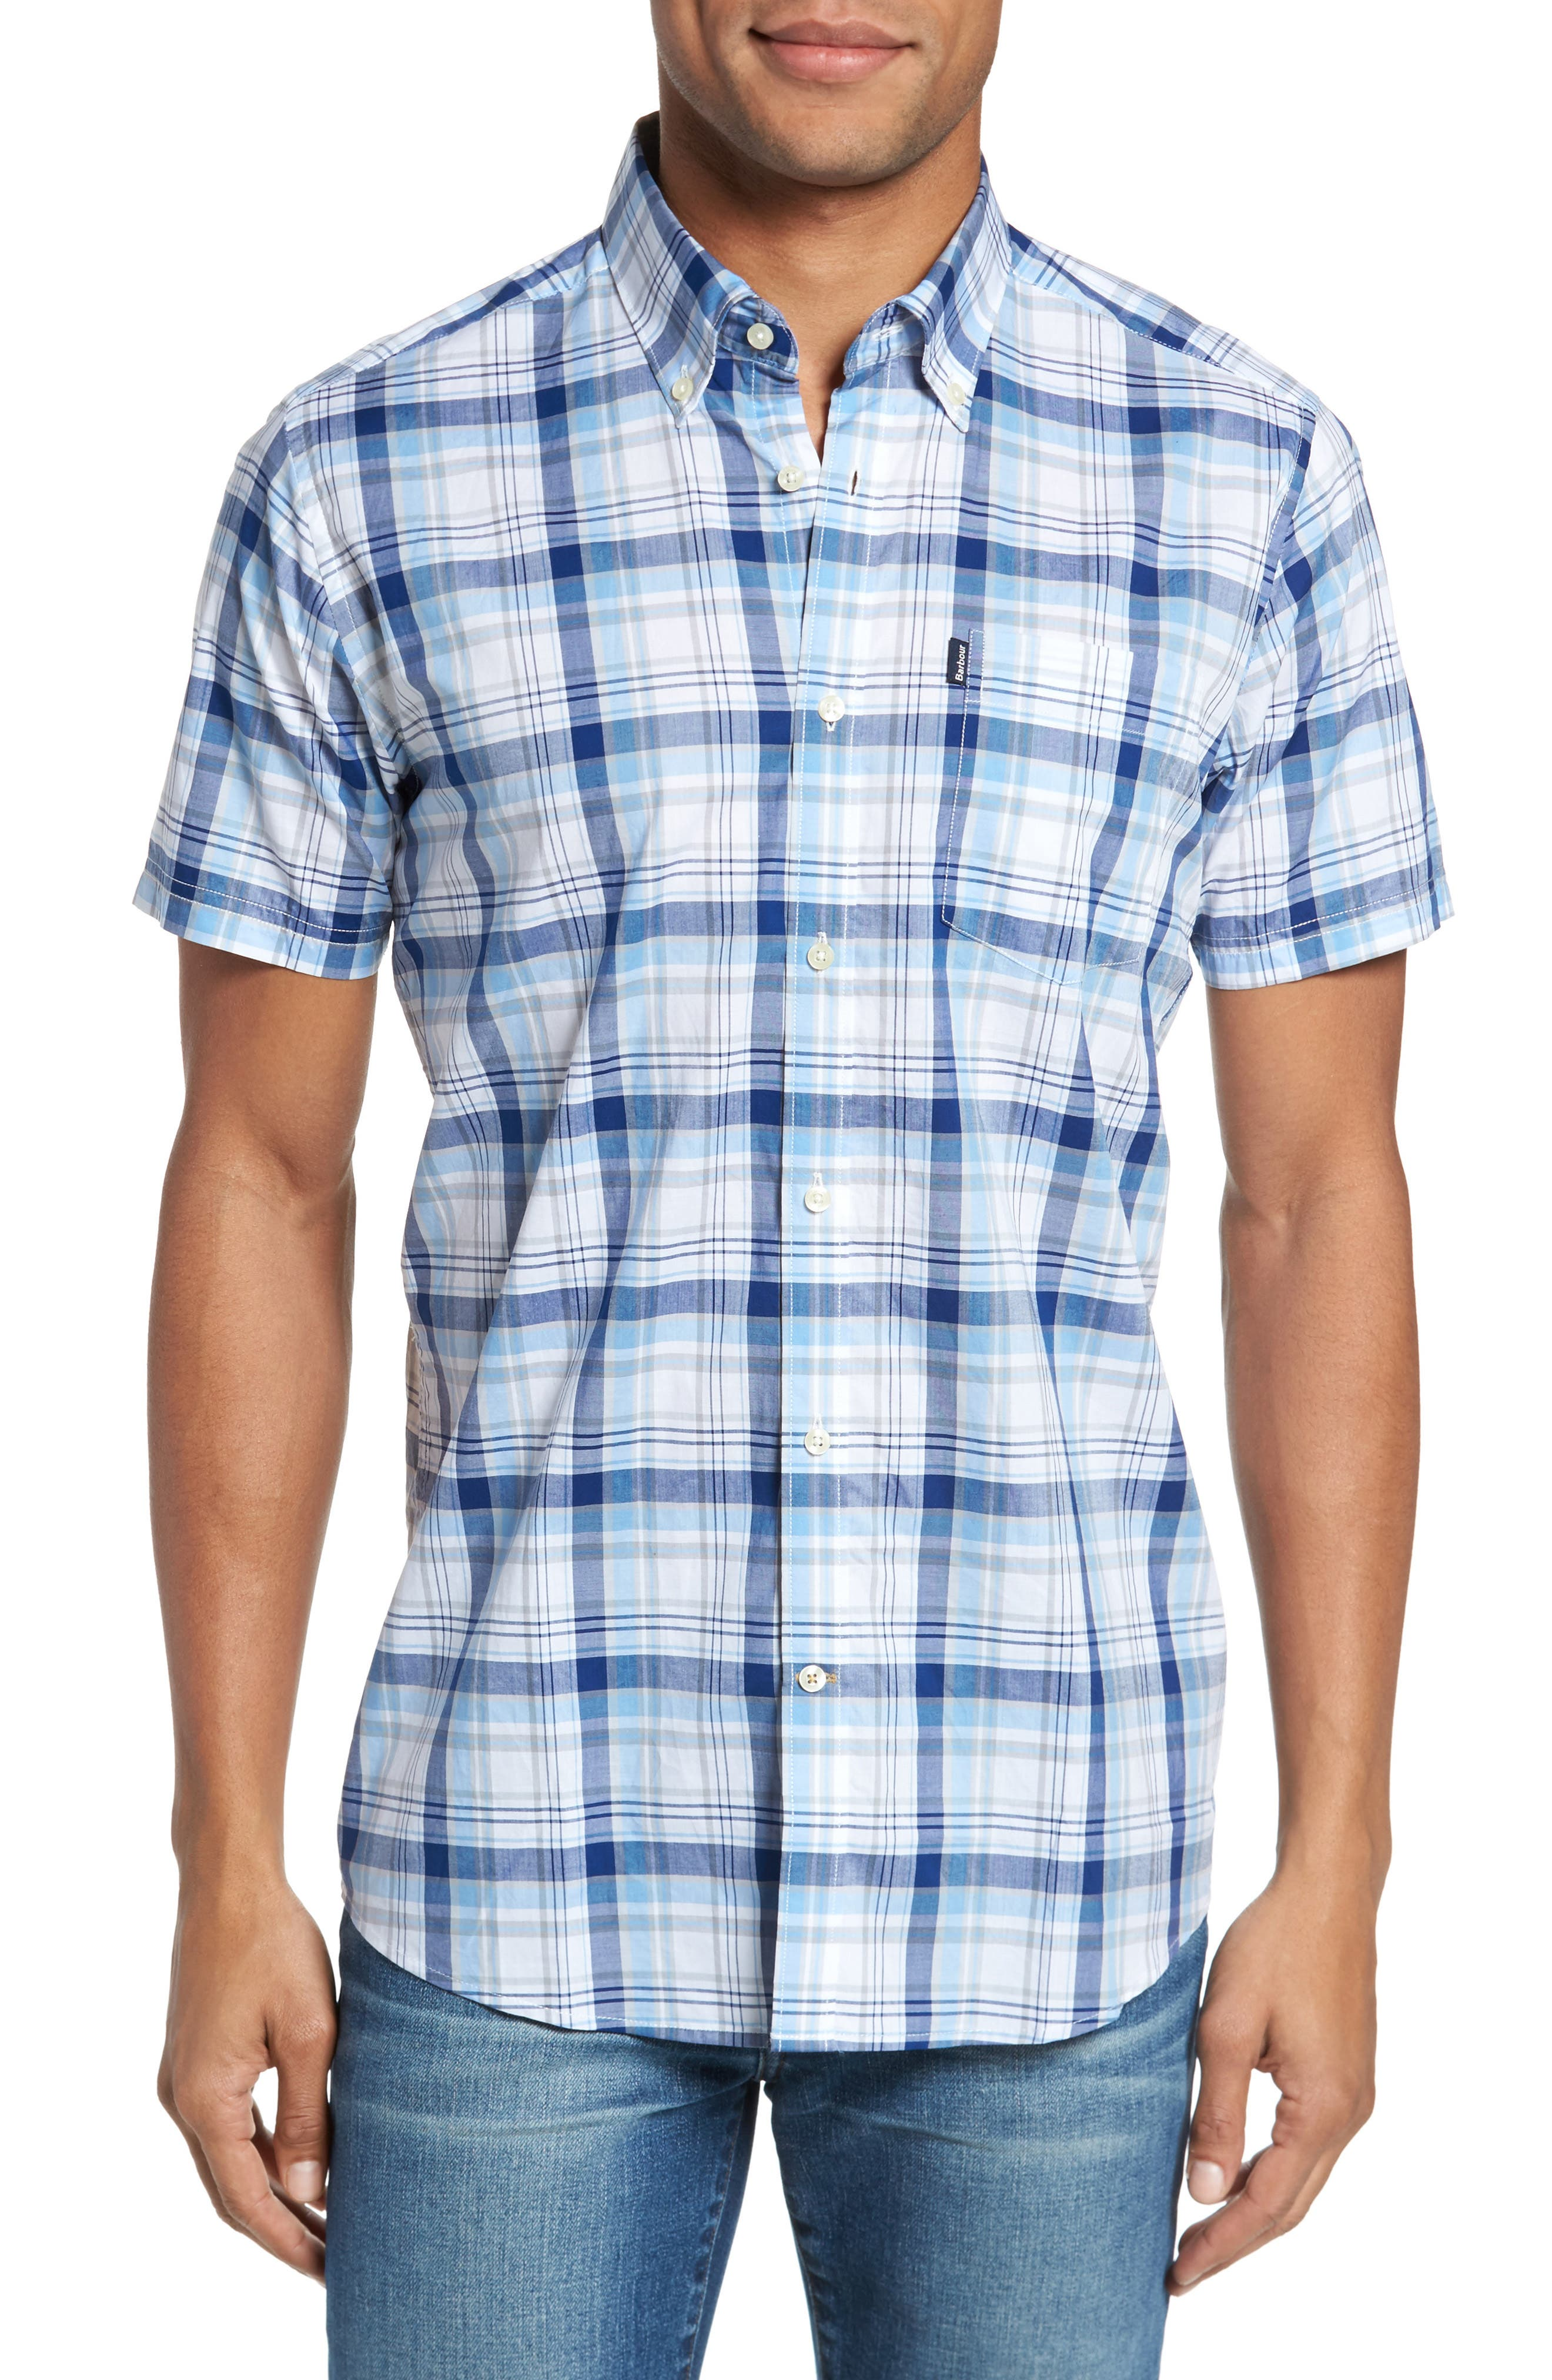 Gerald Tailored Fit Plaid Sport Shirt,                         Main,                         color, Blue